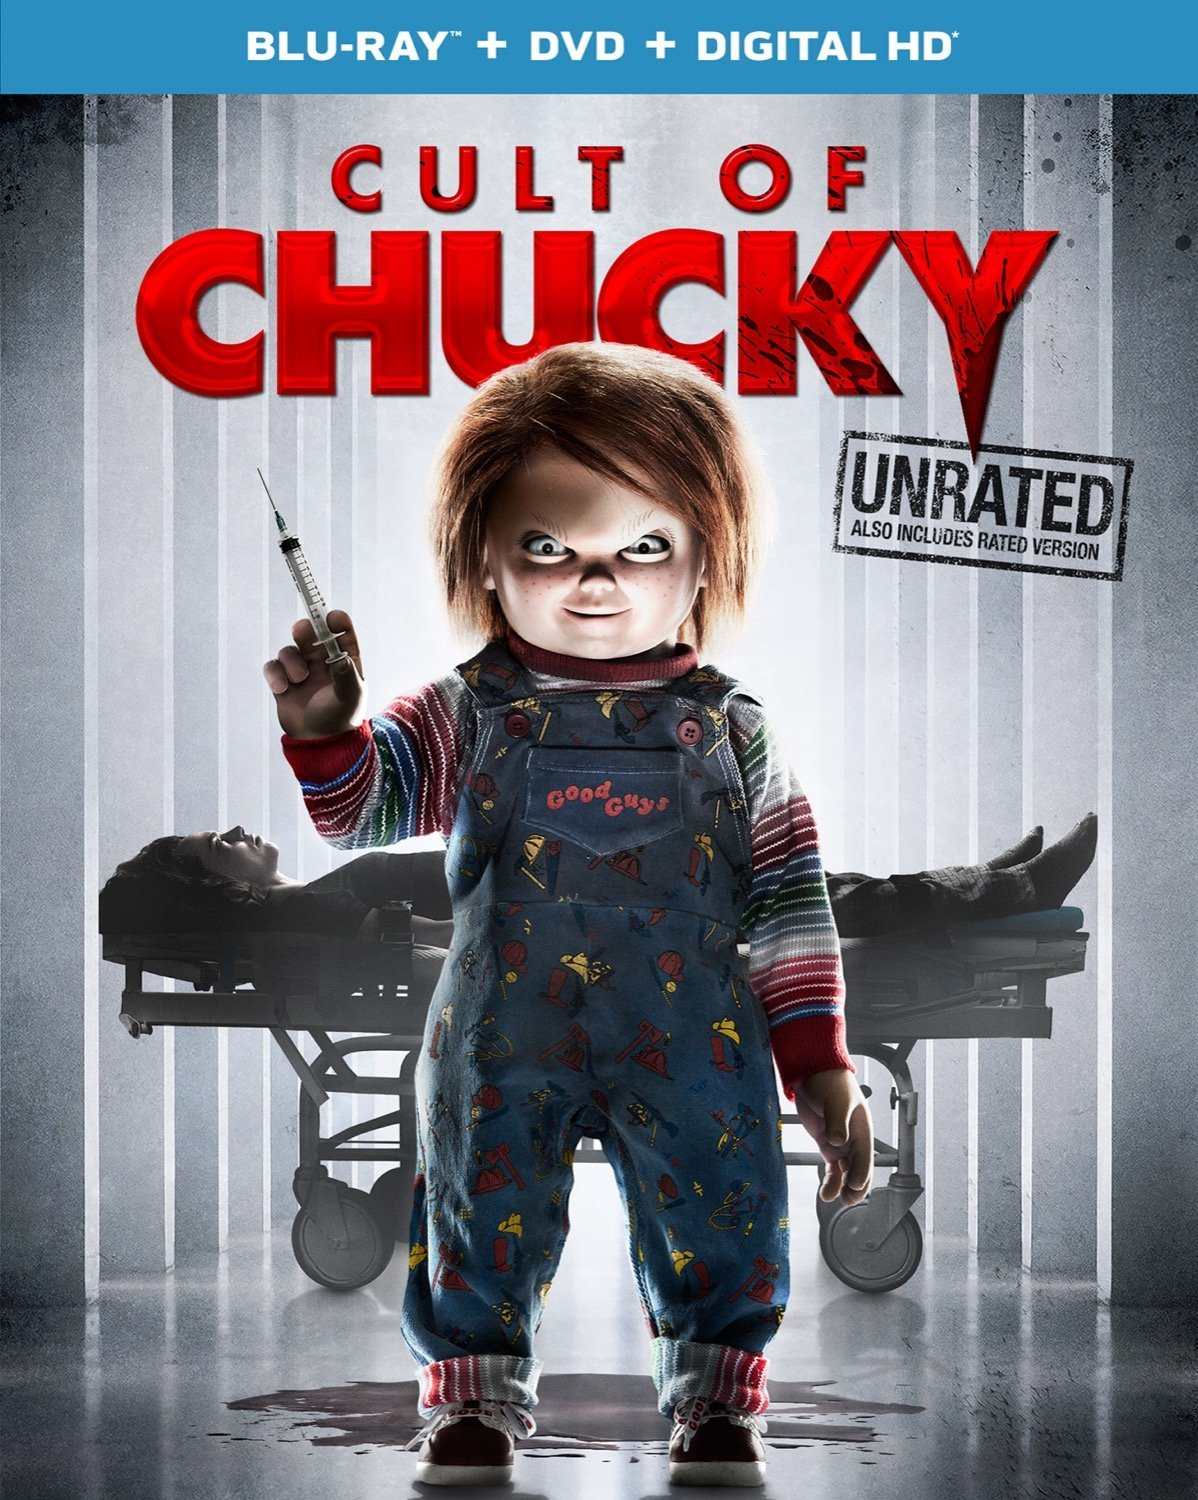 cult of chucky blu ray - Cult of Chucky - FX Designer Tony Gardner Speaks! Exclusive Behind-the-Scenes Video and Images!